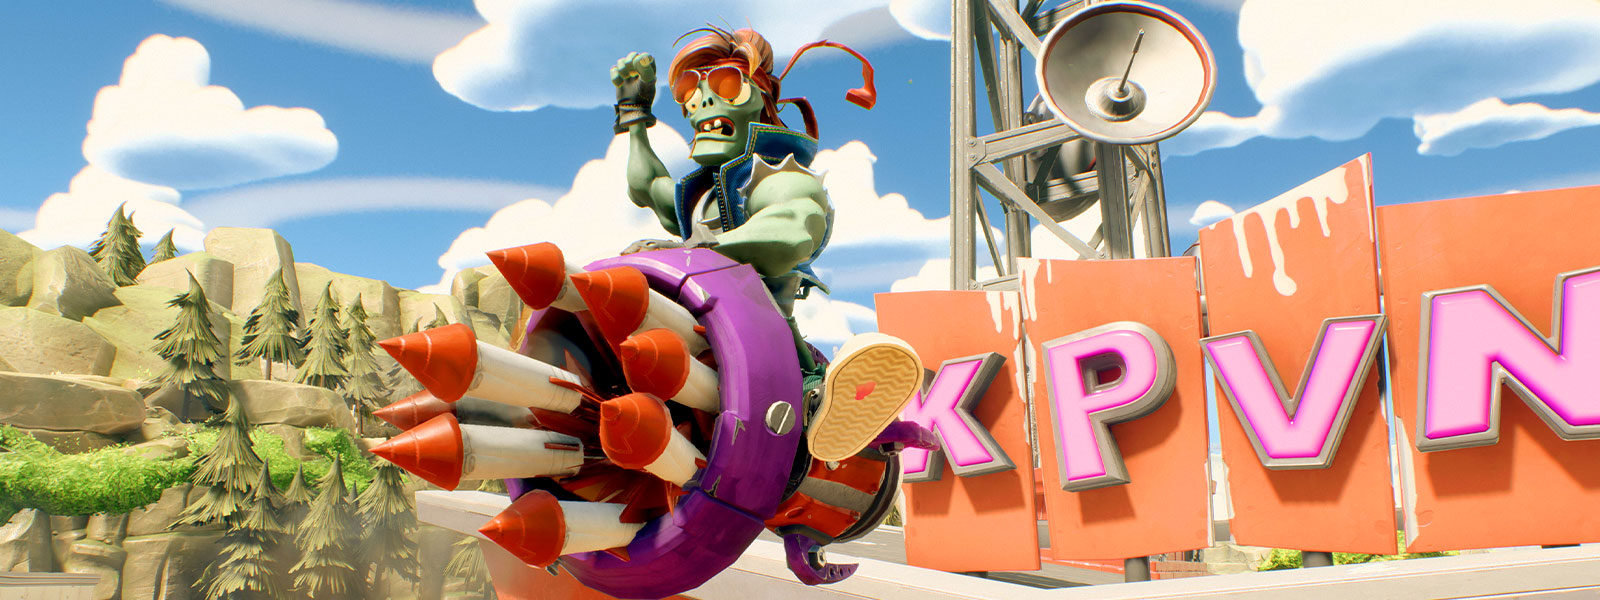 Zombie riding a rocket with many smaller rockets in the air in front of a mountain and tower